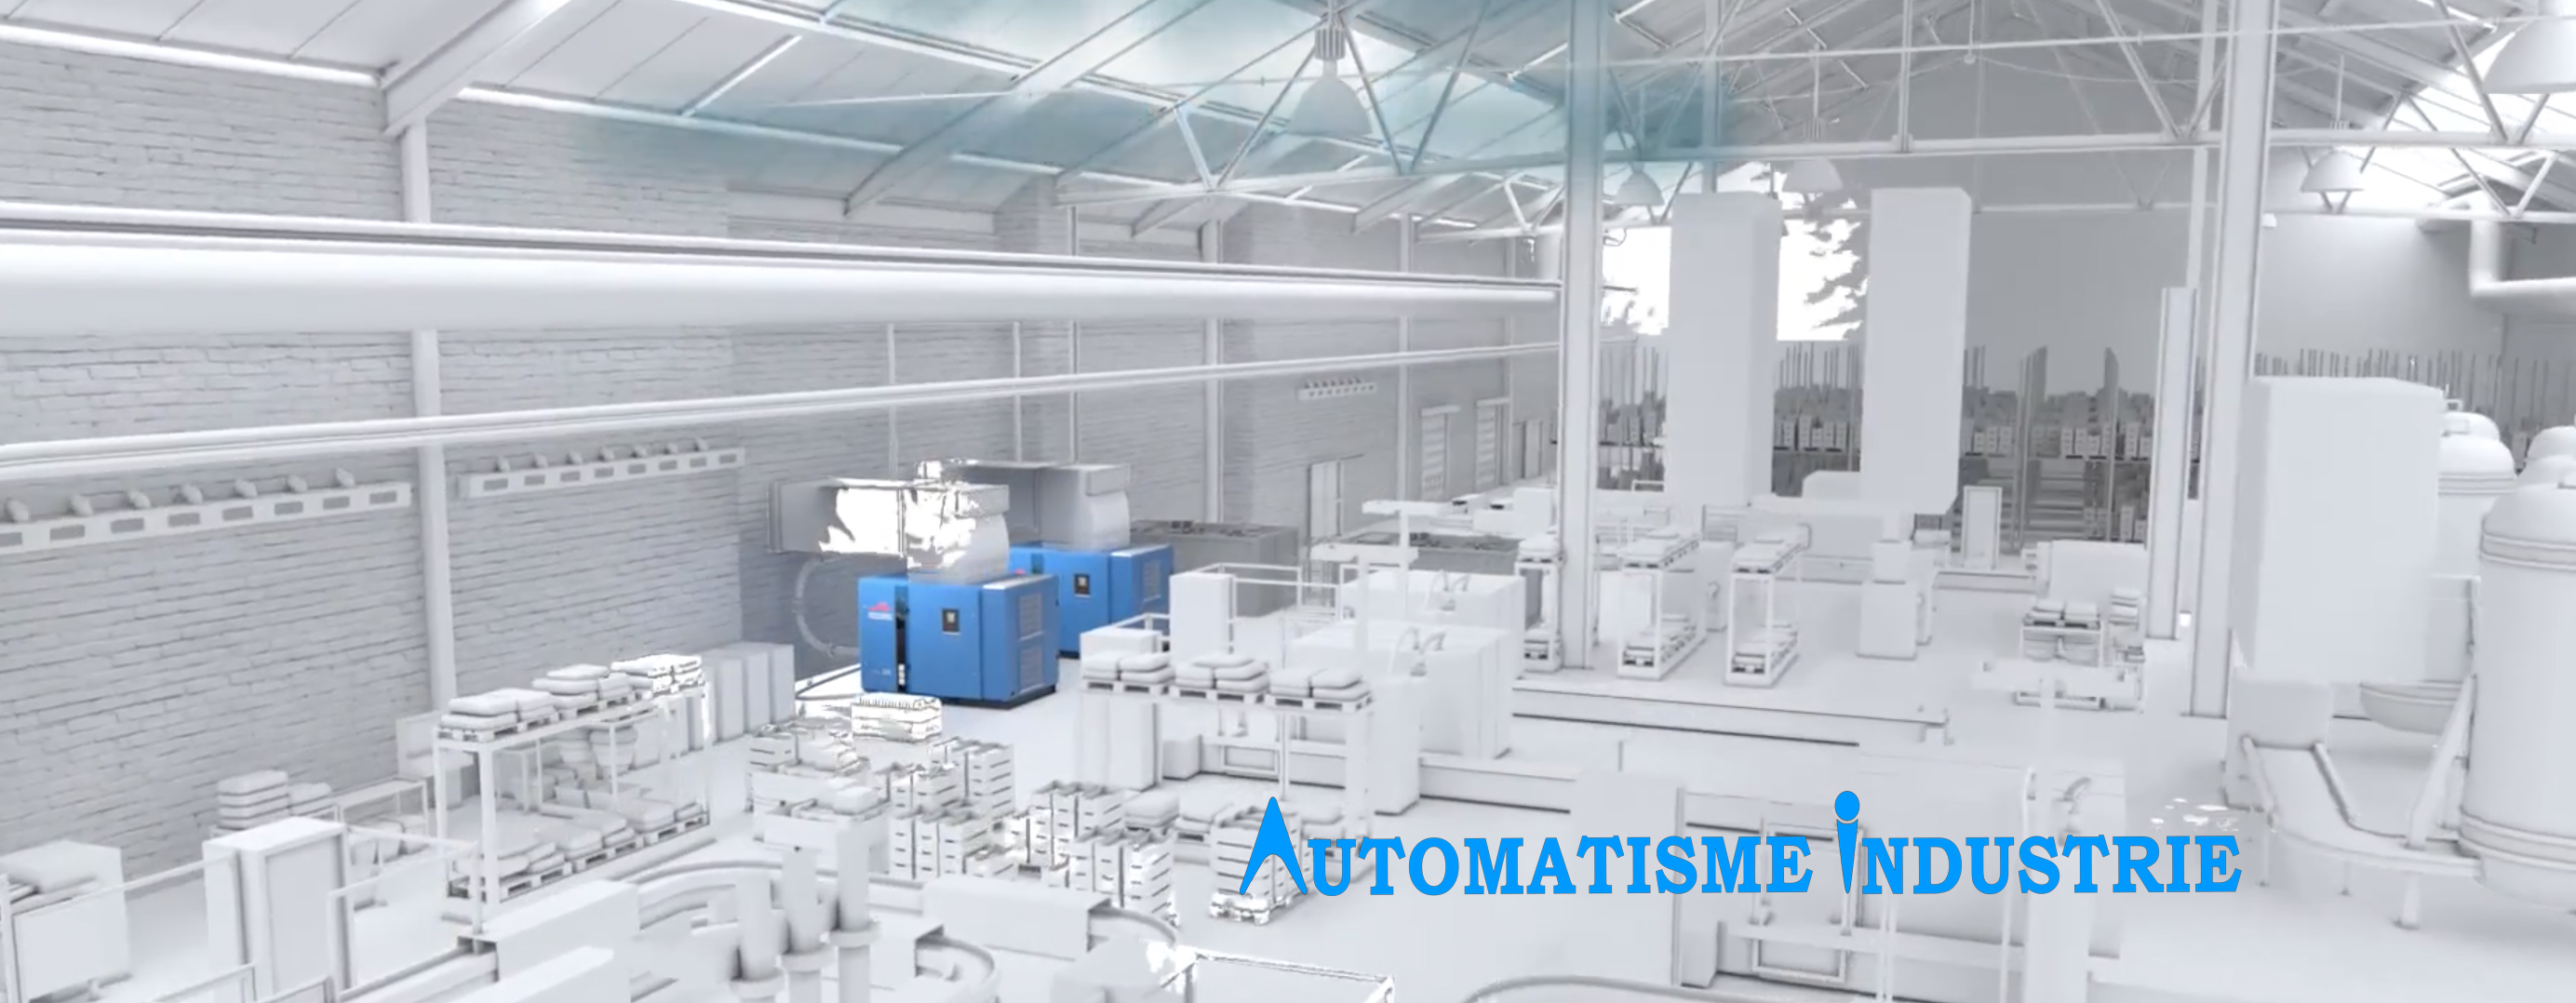 Automatisme Industrie